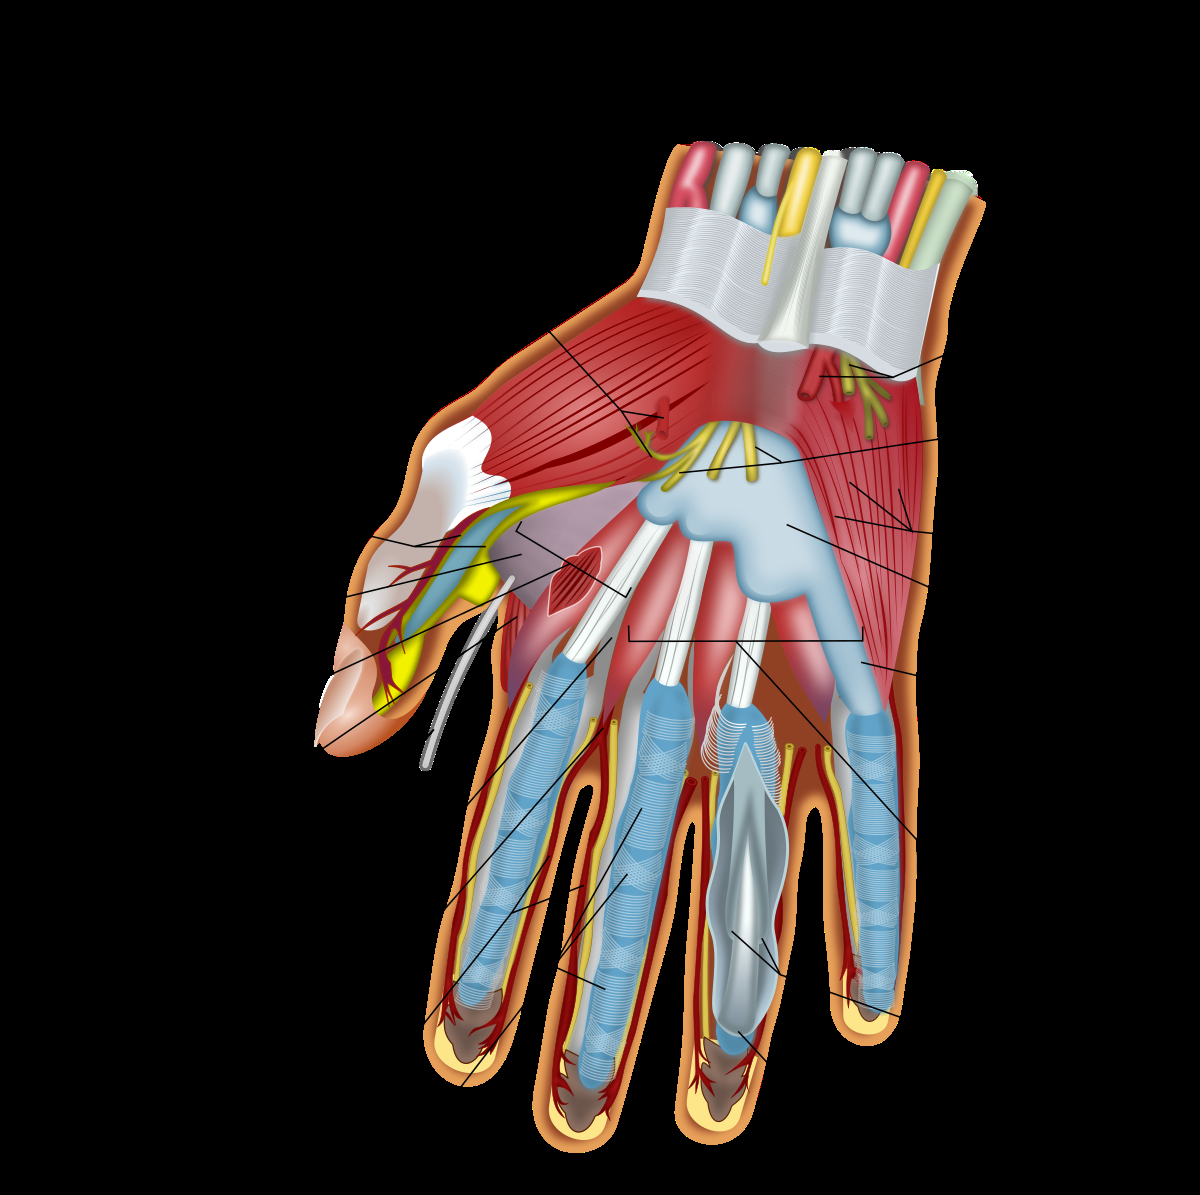 Human Muscle Diagram Muscles Of The Hand Wikipedia